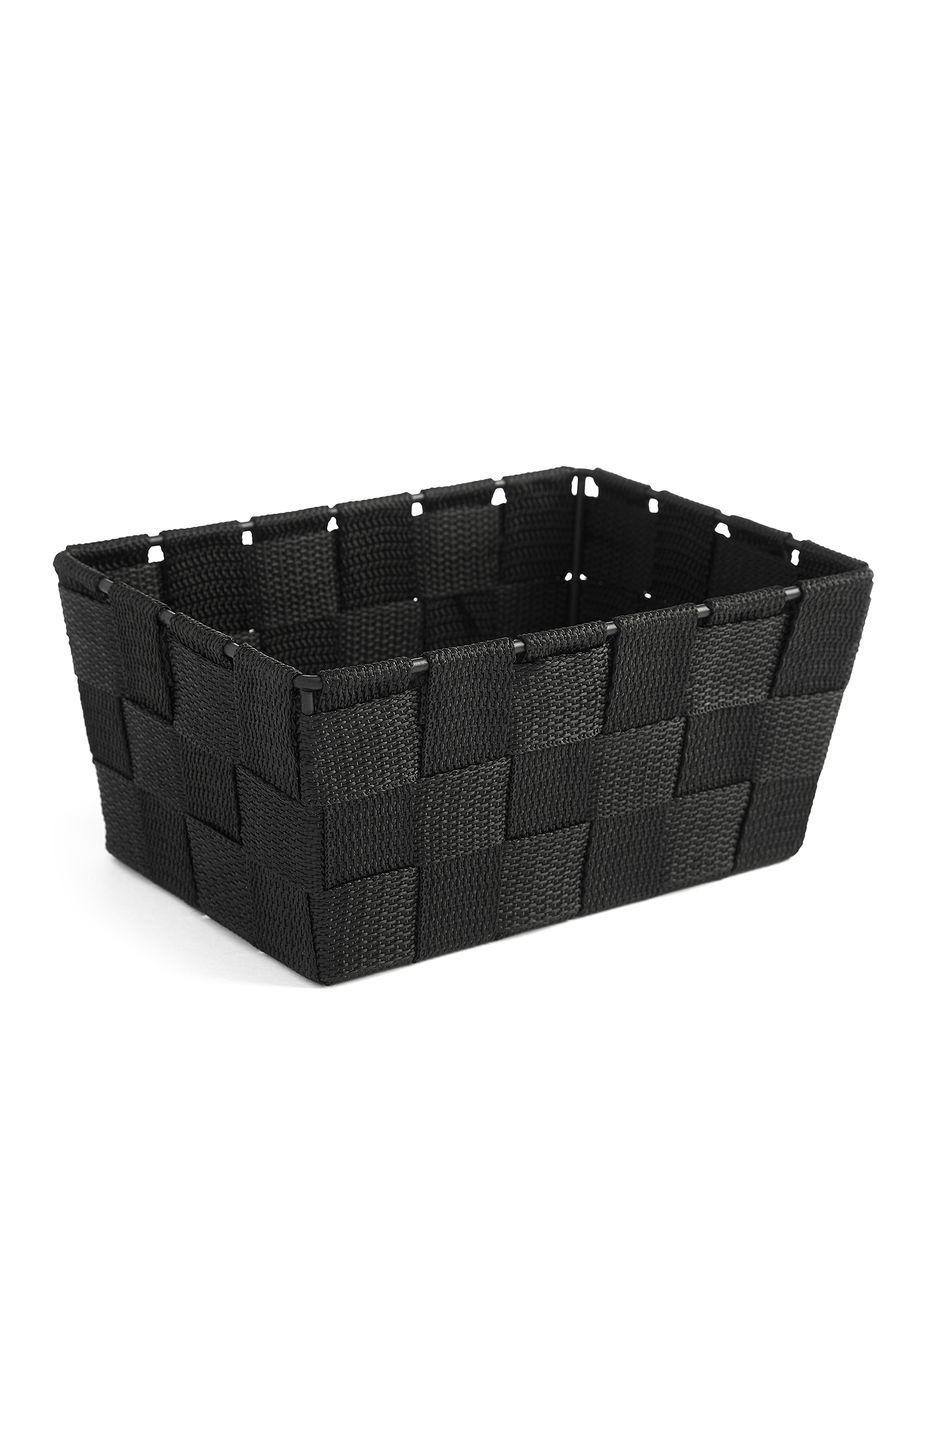 <p>Woven basket in black, price unknown </p>